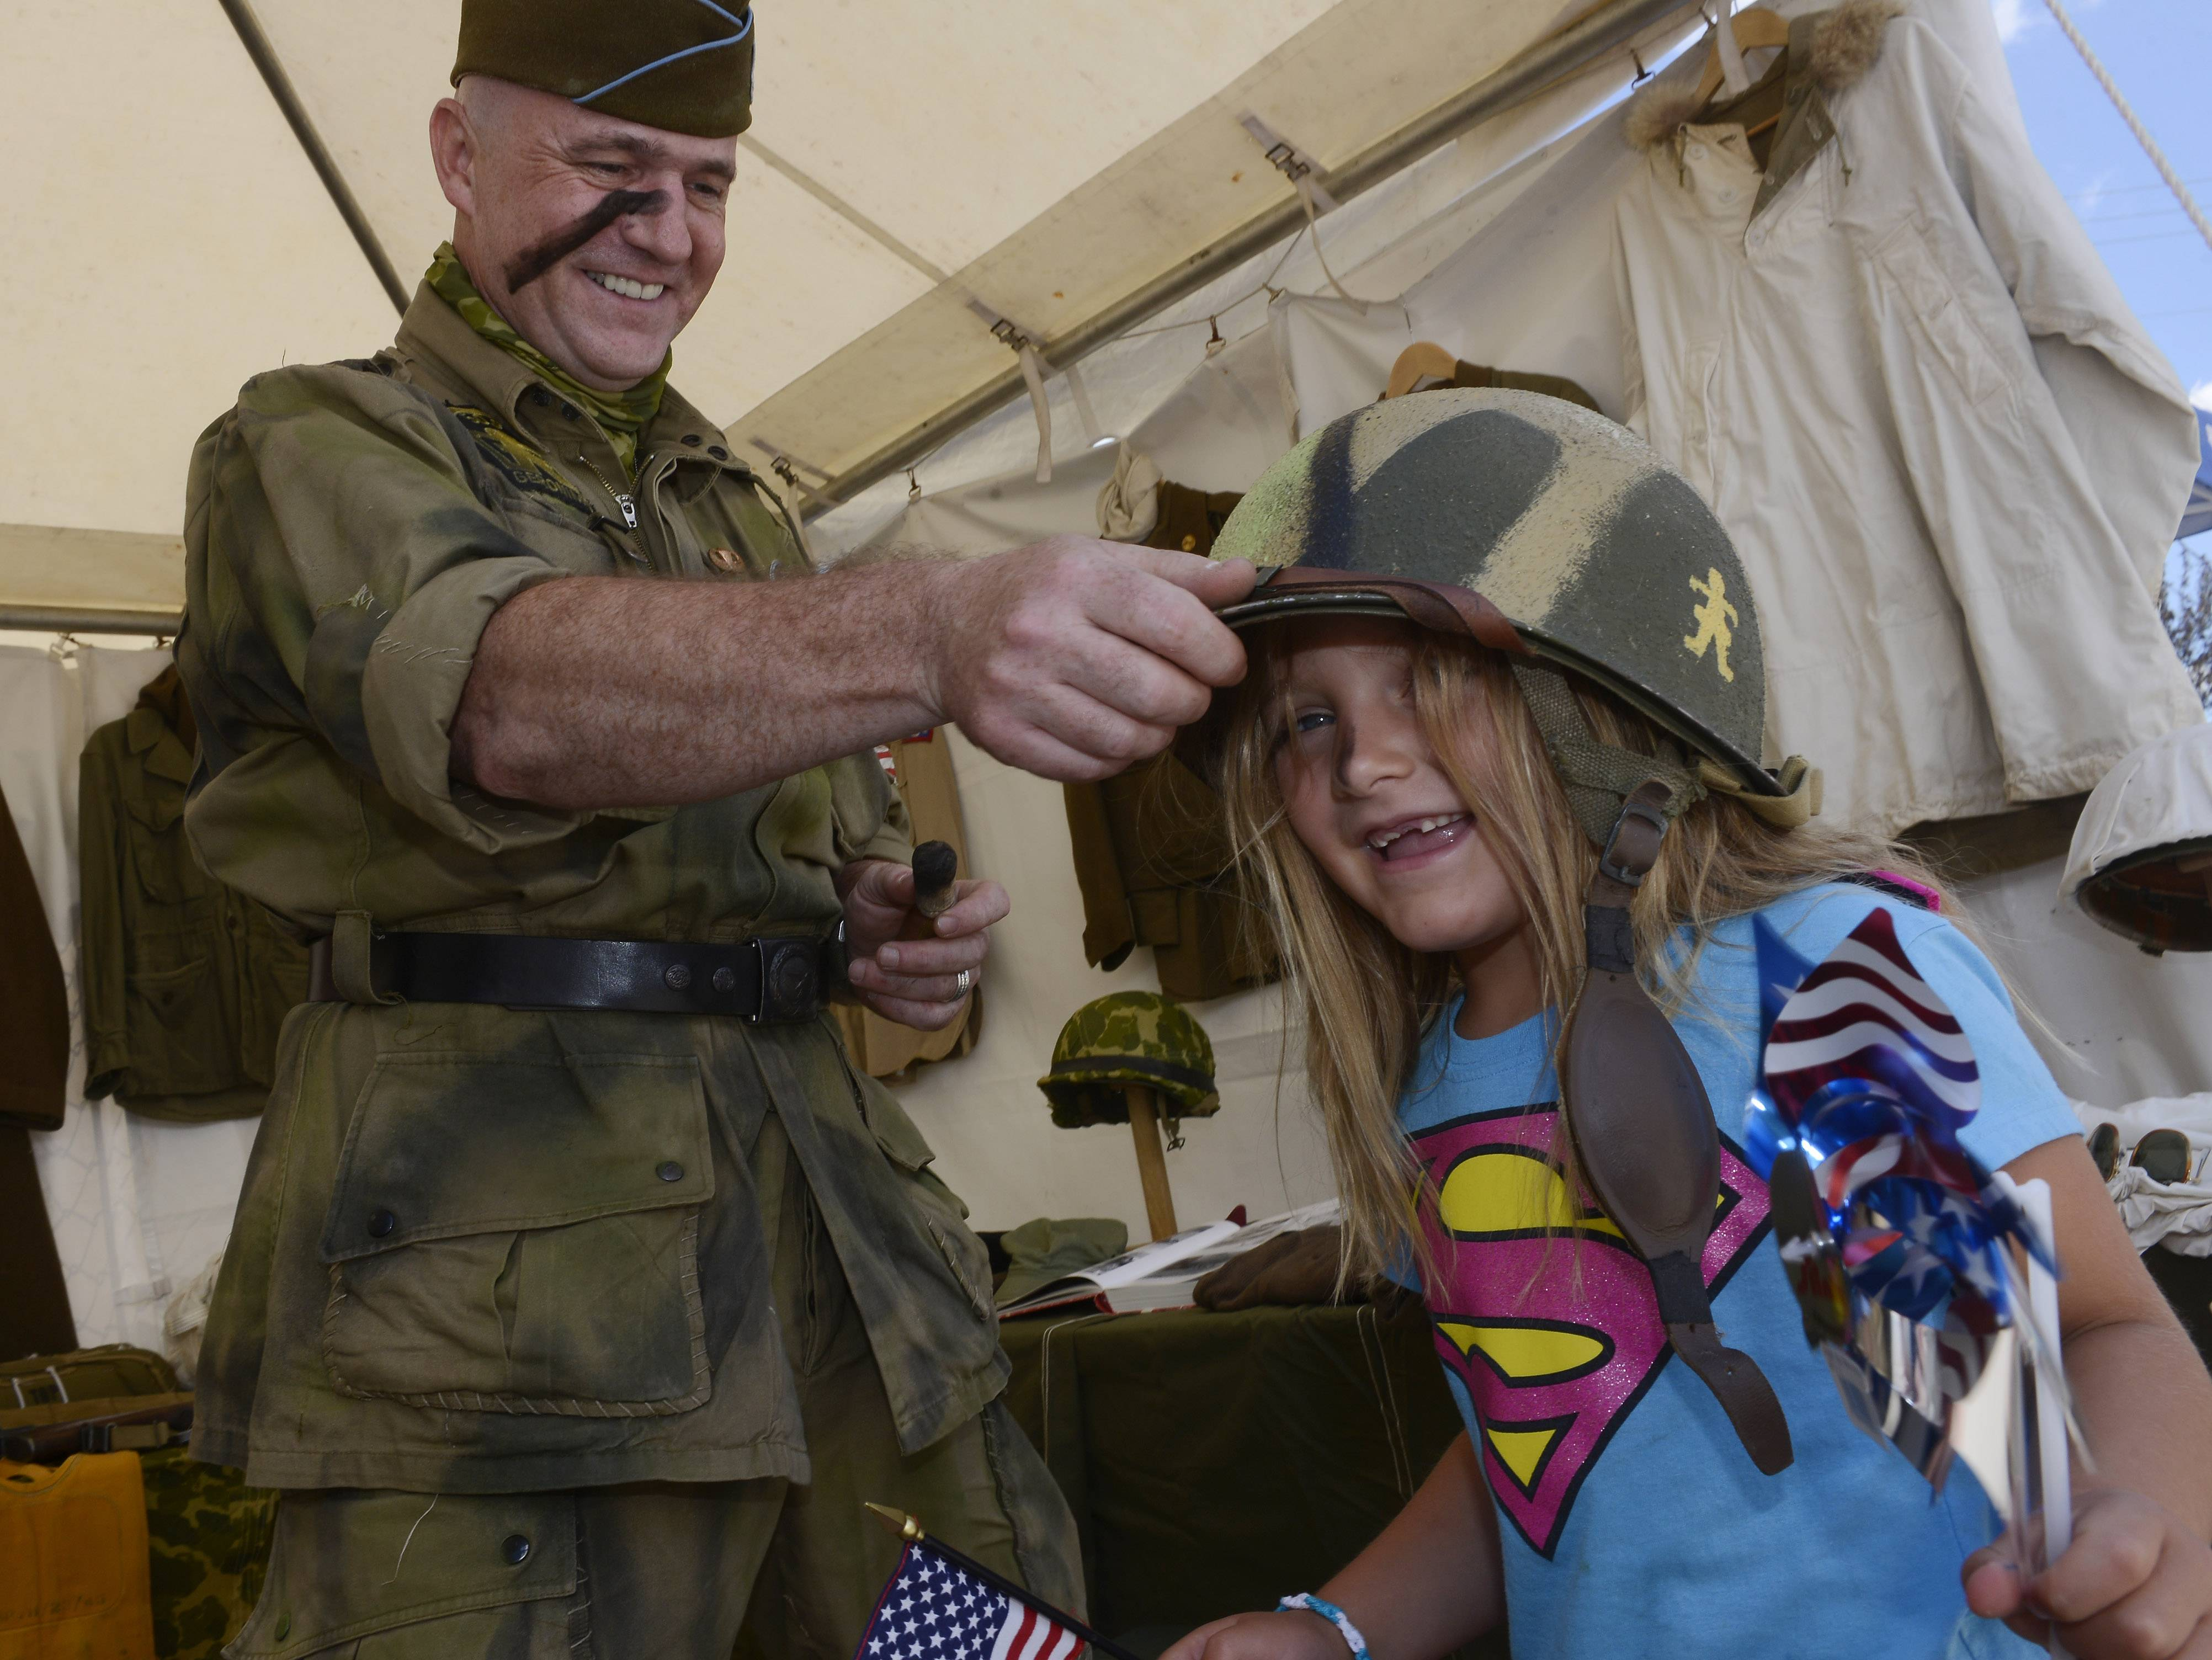 Chloe Mosele, 5, of Barrington, tries on an army helmet with the assistance of Stephane Goupil while visiting the 509th Parachute Infantry Battalion display during Thursday's festival in Barrington.